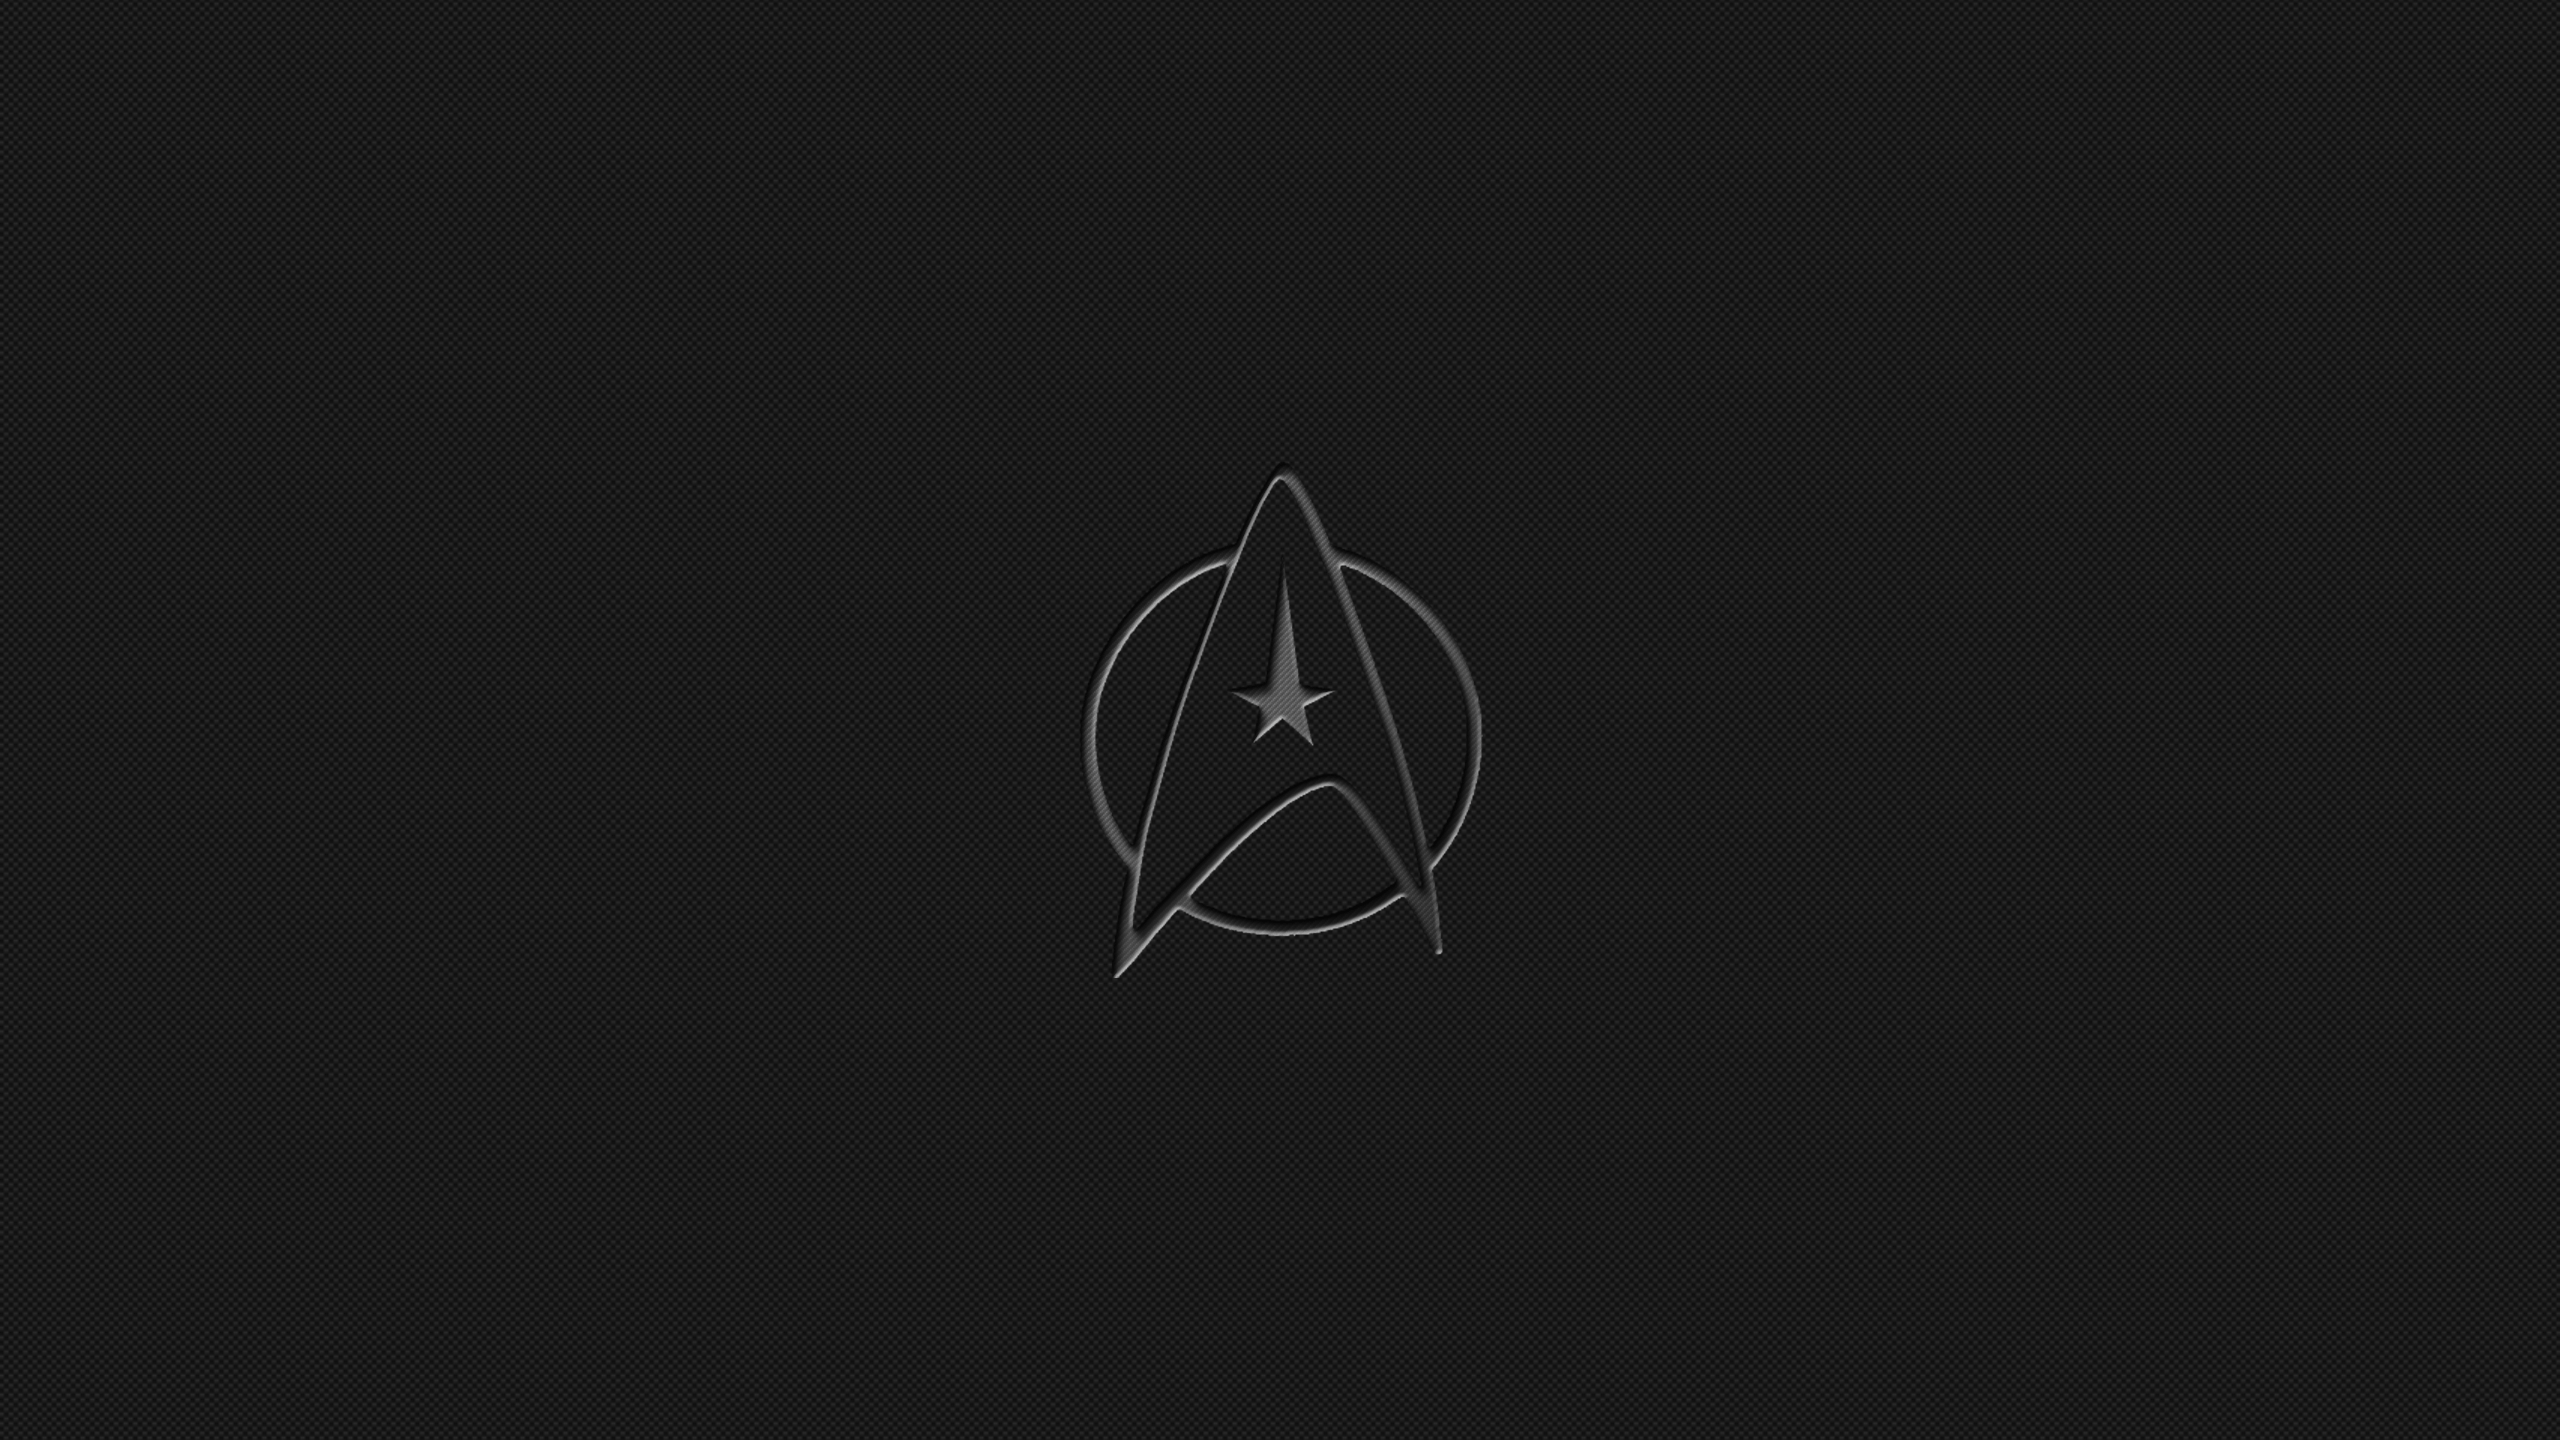 "2560x1440 Logo Star Trek Wallpapers | PixelsTalk.Net""> · Download · 3840x2160 Star Trek Wallpaper ..."